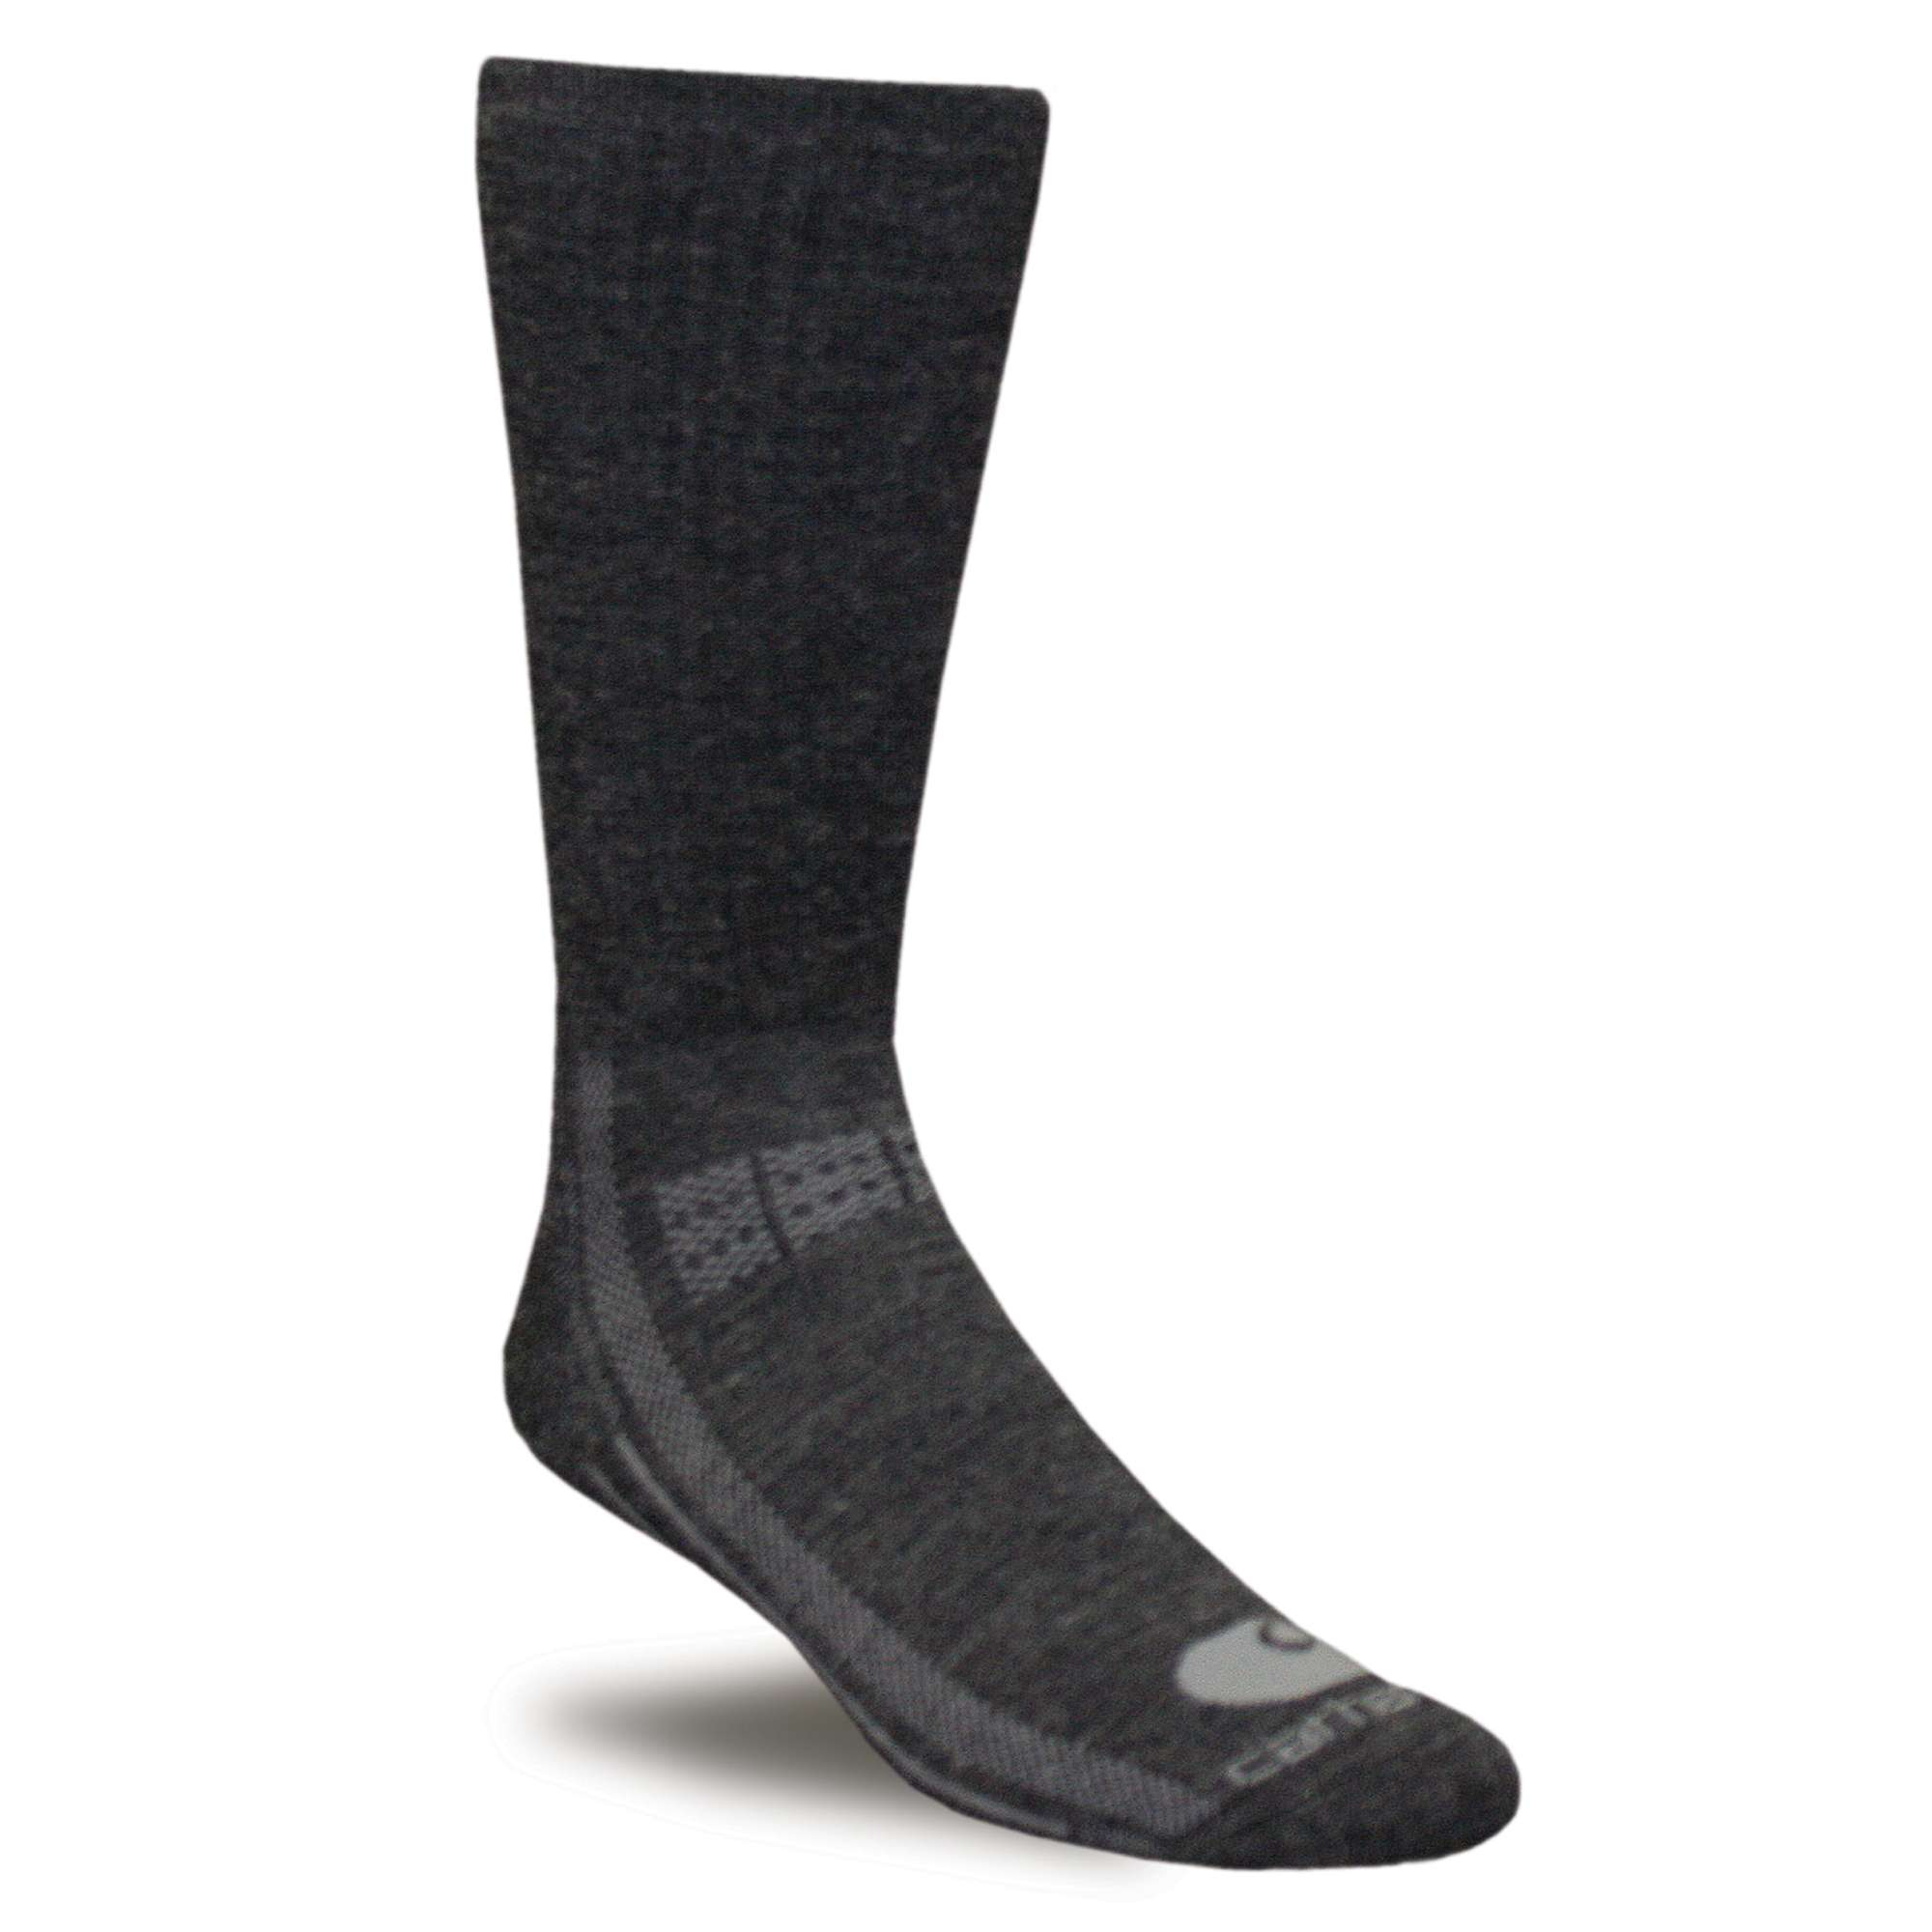 Carhartt Ultimate Merino Wool Work Sock